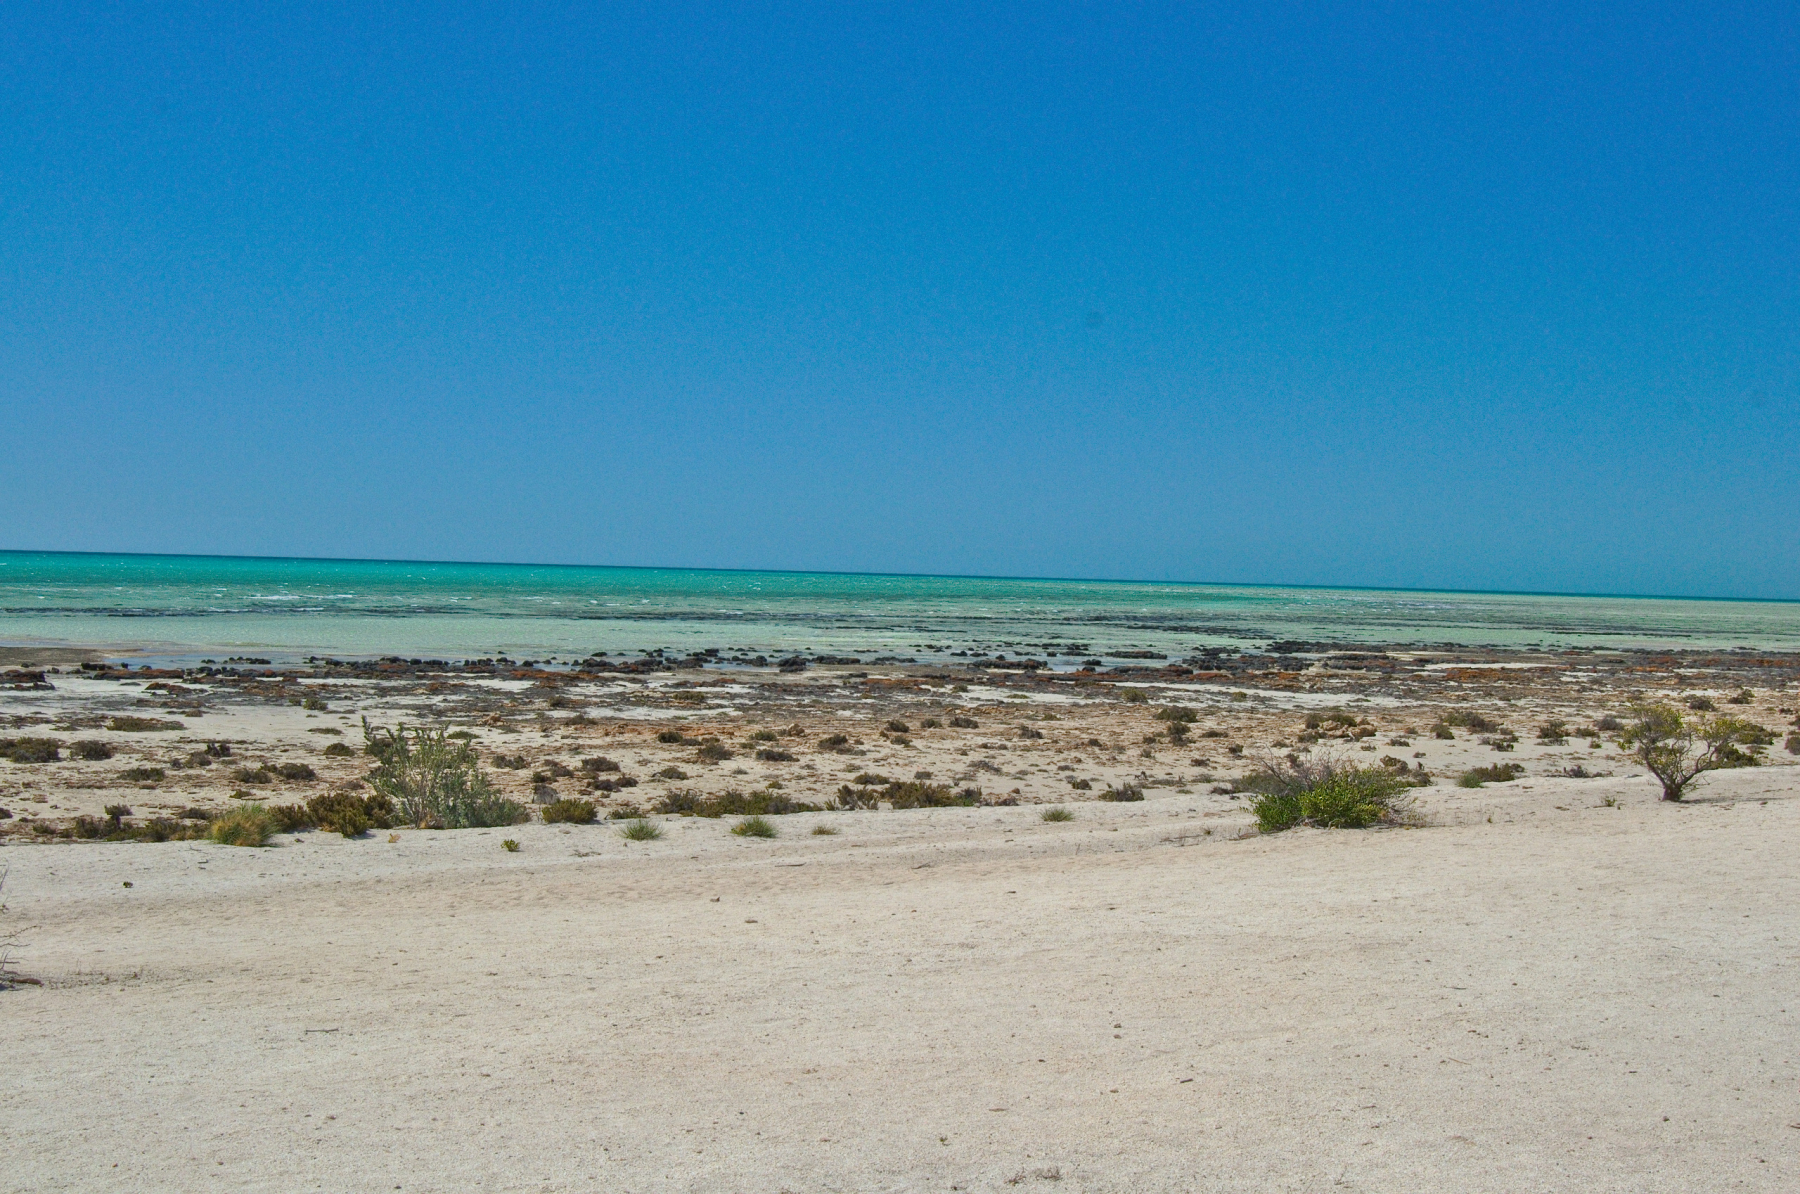 Beach of Hamelin Pool at Shark Bay in Western Australia